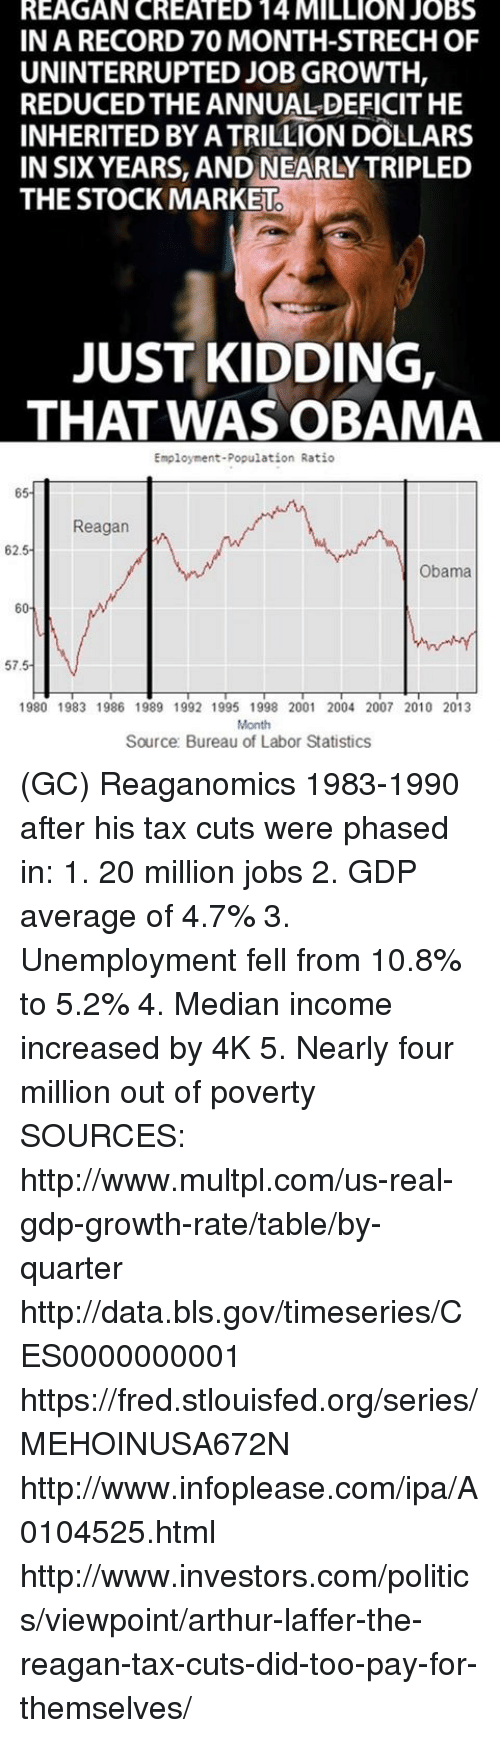 Arthur, Memes, and Obama: REAGAN CREATED 14 MILLION JOBS  IN A RECORD 70 MONTH-STRECHOF  UNINTERRUPTED JOB GROWTH,  REDUCED THE ANNUALDEFICIT HE  INHERITED BY ATRILLION DOLLARS  IN SIX YEARS, AND NEARLY TRIPLED  THE STOCK MARKET  JUST KIDDING,  THAT WAS OBAMA  Employment-Population Ratio  65  Reagan  w  62.5  Obama  60  57.5  1980 1983 1986 1989 1992 1995 1998 2001 2004 2007 2010 2013  Month  Source: Bureau of Labor Statistics (GC) Reaganomics 1983-1990 after his tax cuts were phased in:  1. 20 million jobs 2. GDP average of 4.7% 3. Unemployment fell from 10.8% to 5.2% 4. Median income increased by 4K 5. Nearly four million out of poverty  SOURCES: http://www.multpl.com/us-real-gdp-growth-rate/table/by-quarter http://data.bls.gov/timeseries/CES0000000001 https://fred.stlouisfed.org/series/MEHOINUSA672N http://www.infoplease.com/ipa/A0104525.html http://www.investors.com/politics/viewpoint/arthur-laffer-the-reagan-tax-cuts-did-too-pay-for-themselves/